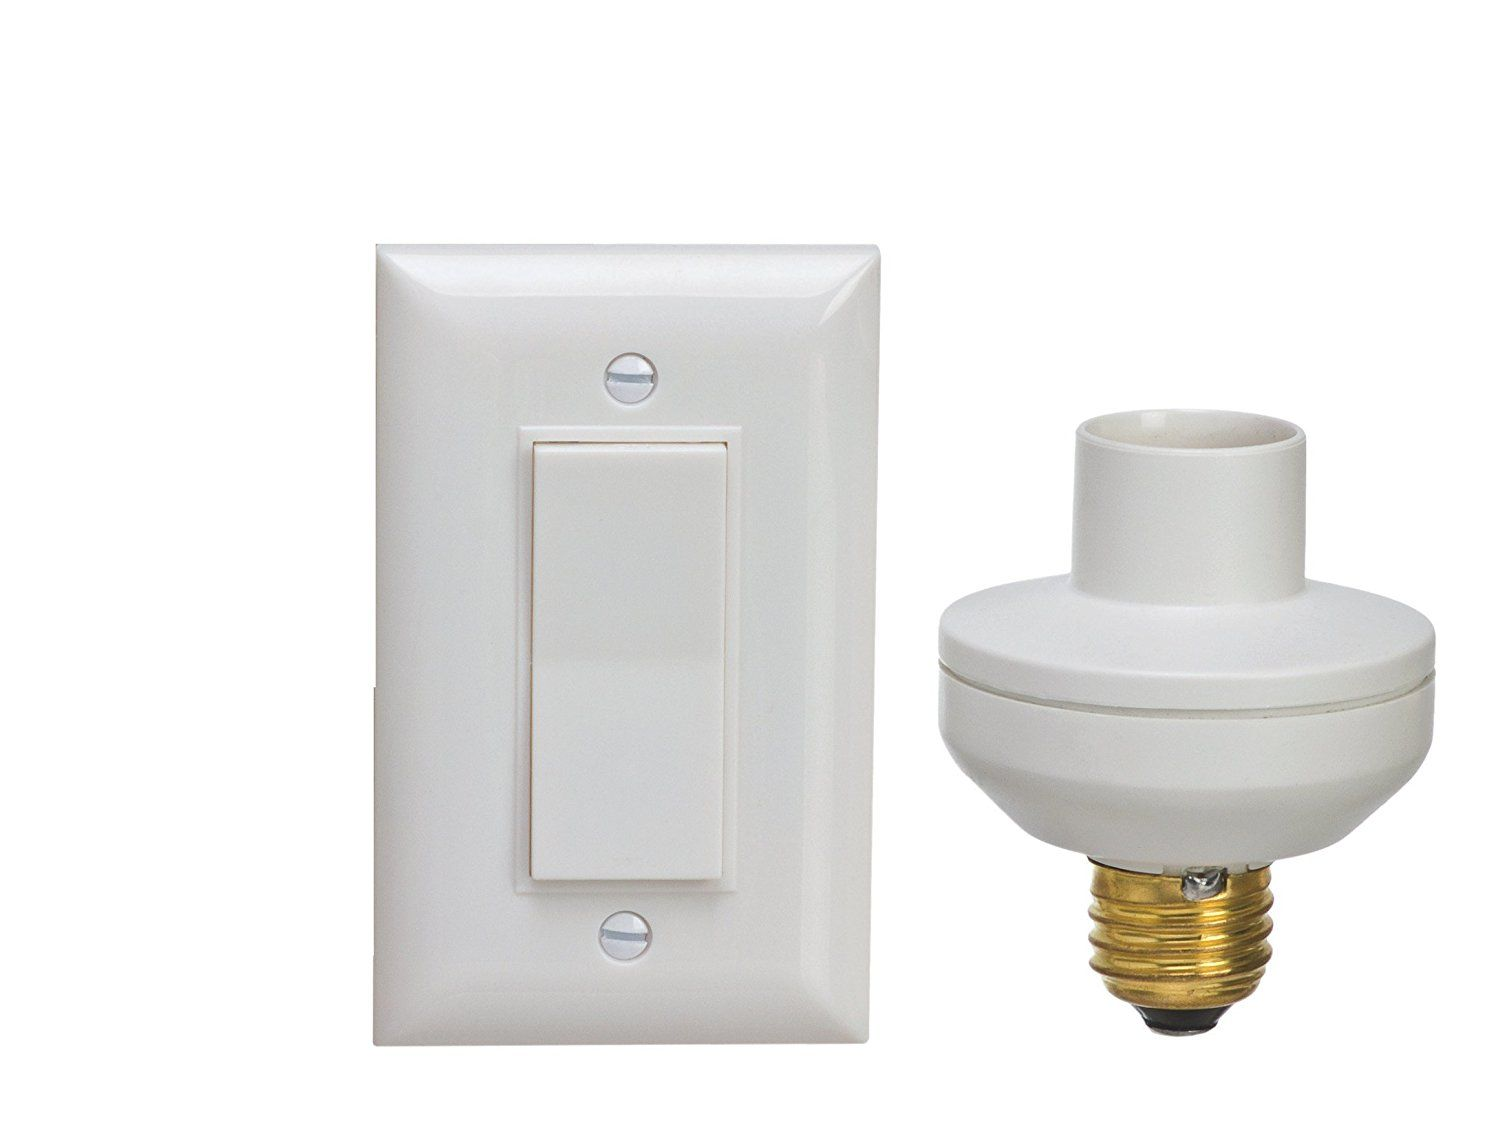 Buy Asap For Burnett Hallway Wireless Remote Control Light Switch And Socket Cap To Turn La Remote Control Light Light Switches And Sockets Remote Light Switch